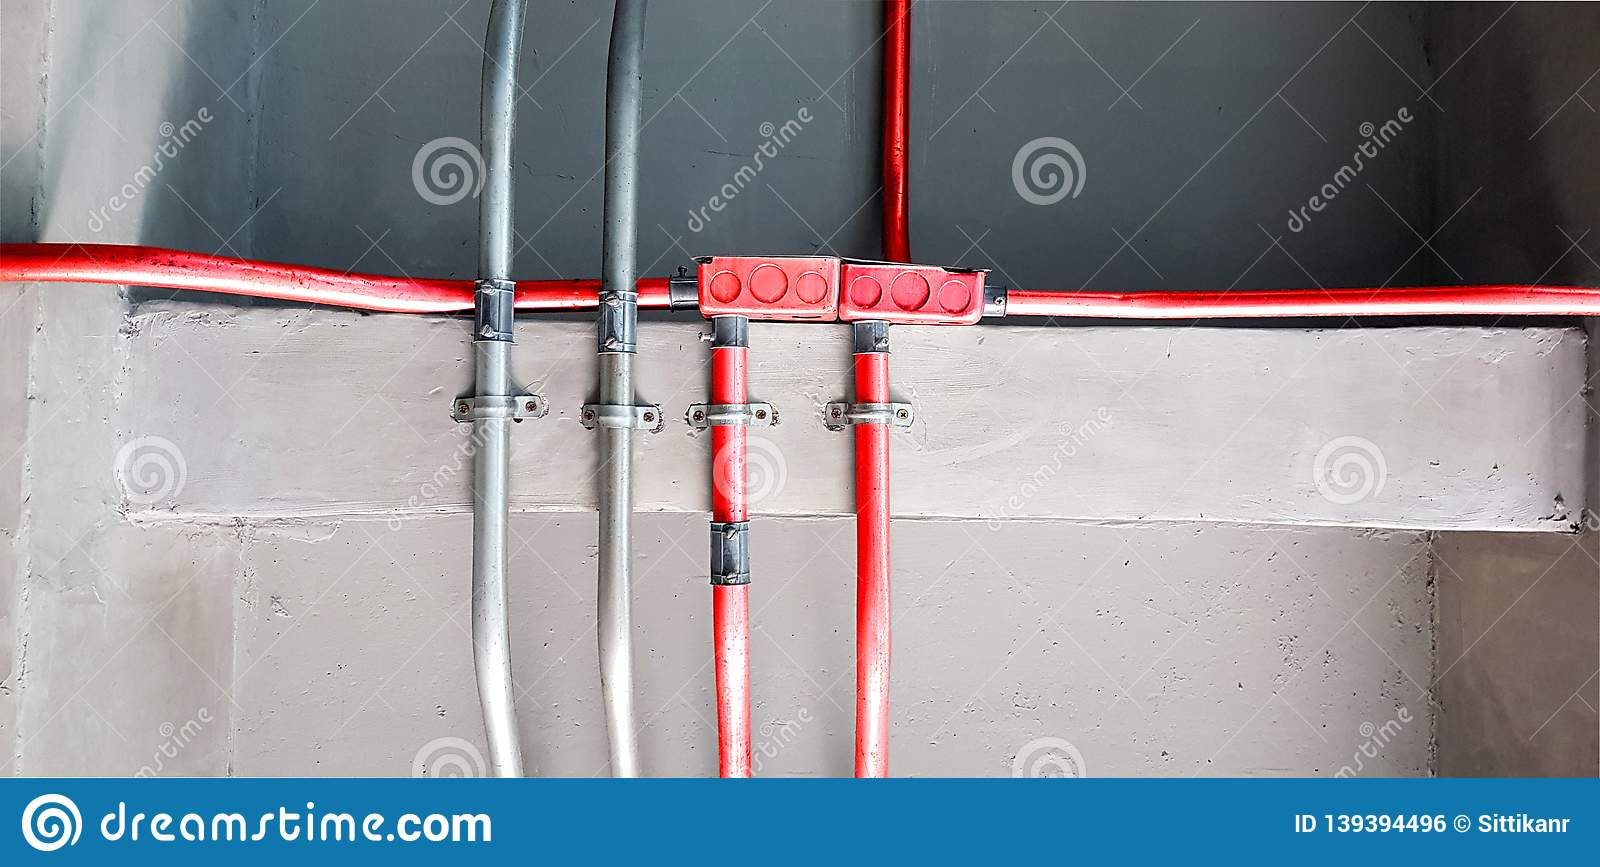 Miraculous Electric Pipes And Red Electric Pipes For Safety Systems In Building Wiring 101 Orsalhahutechinfo